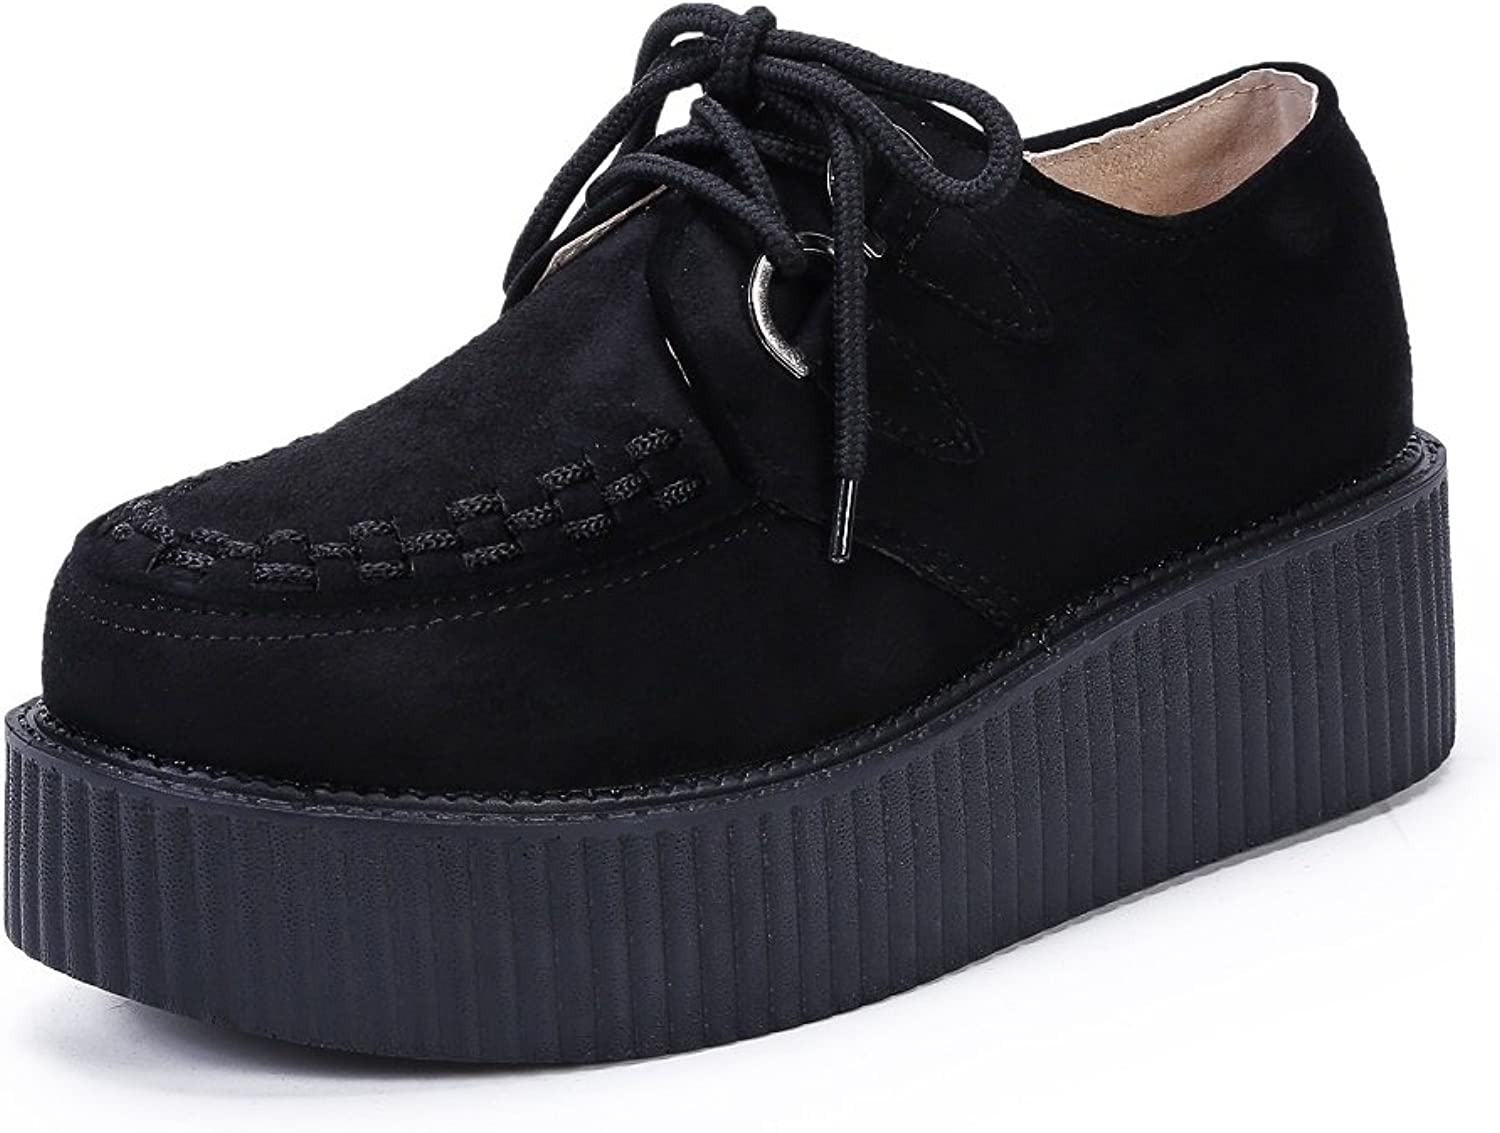 YORWOR Women's Creepers Wedge Platform shoes Lace-up Flat Fashion Oxford